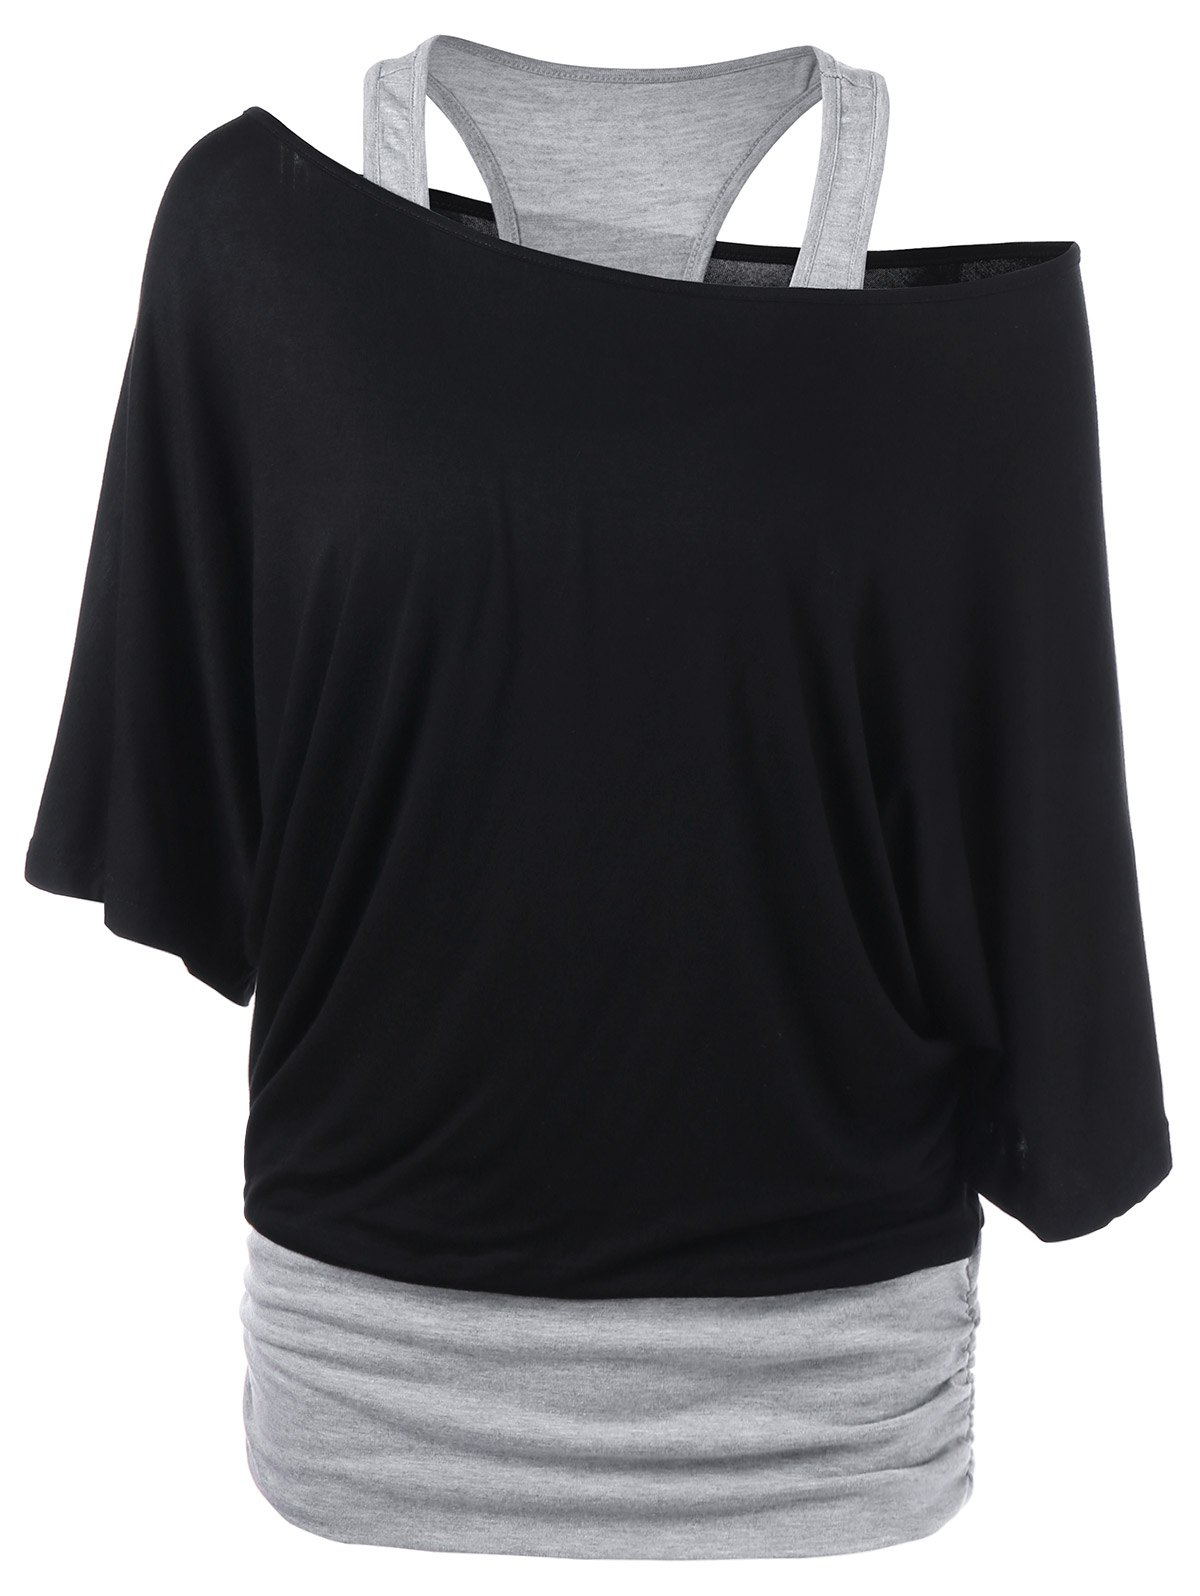 Skew Neck Racerback Two Tone T-ShirtWOMEN<br><br>Size: M; Color: BLACK AND GREY; Material: Rayon,Spandex; Shirt Length: Regular; Sleeve Length: Half; Collar: Skew Collar; Style: Casual; Season: Summer; Pattern Type: Solid; Weight: 0.3500kg; Package Contents: 1 x T-Shirt;